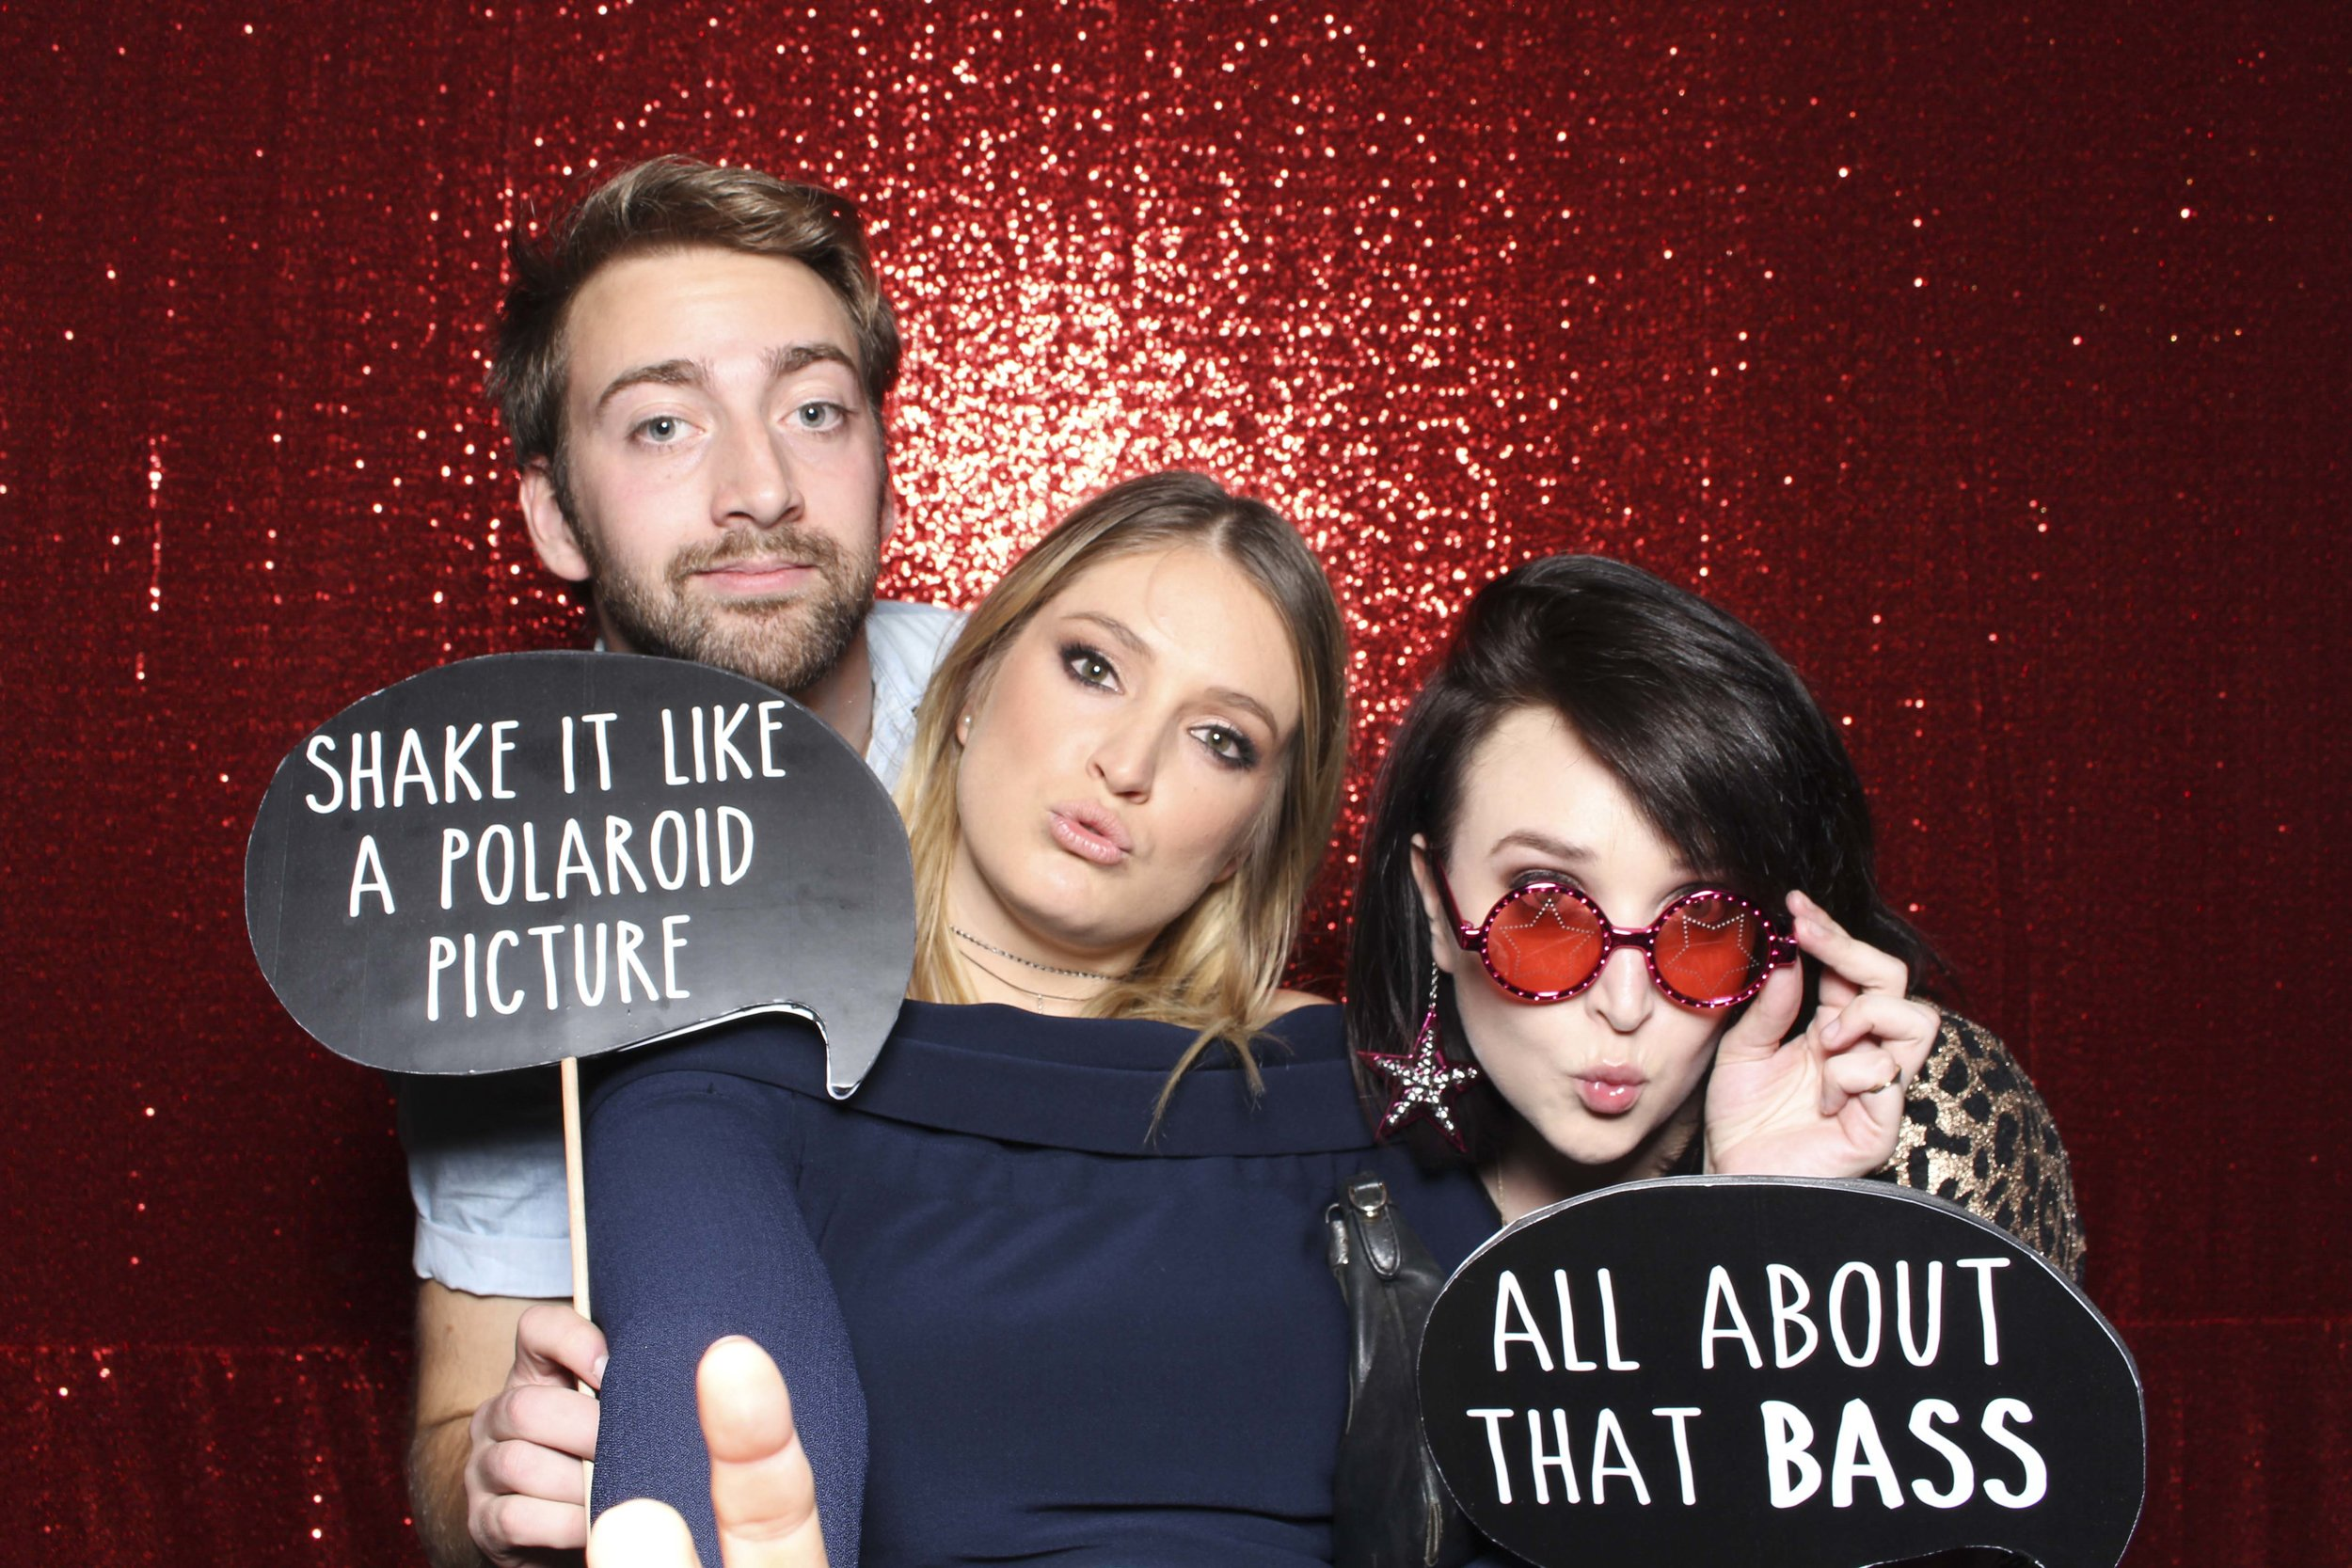 photo booth hire sydney backdrop red sequin004.jpg